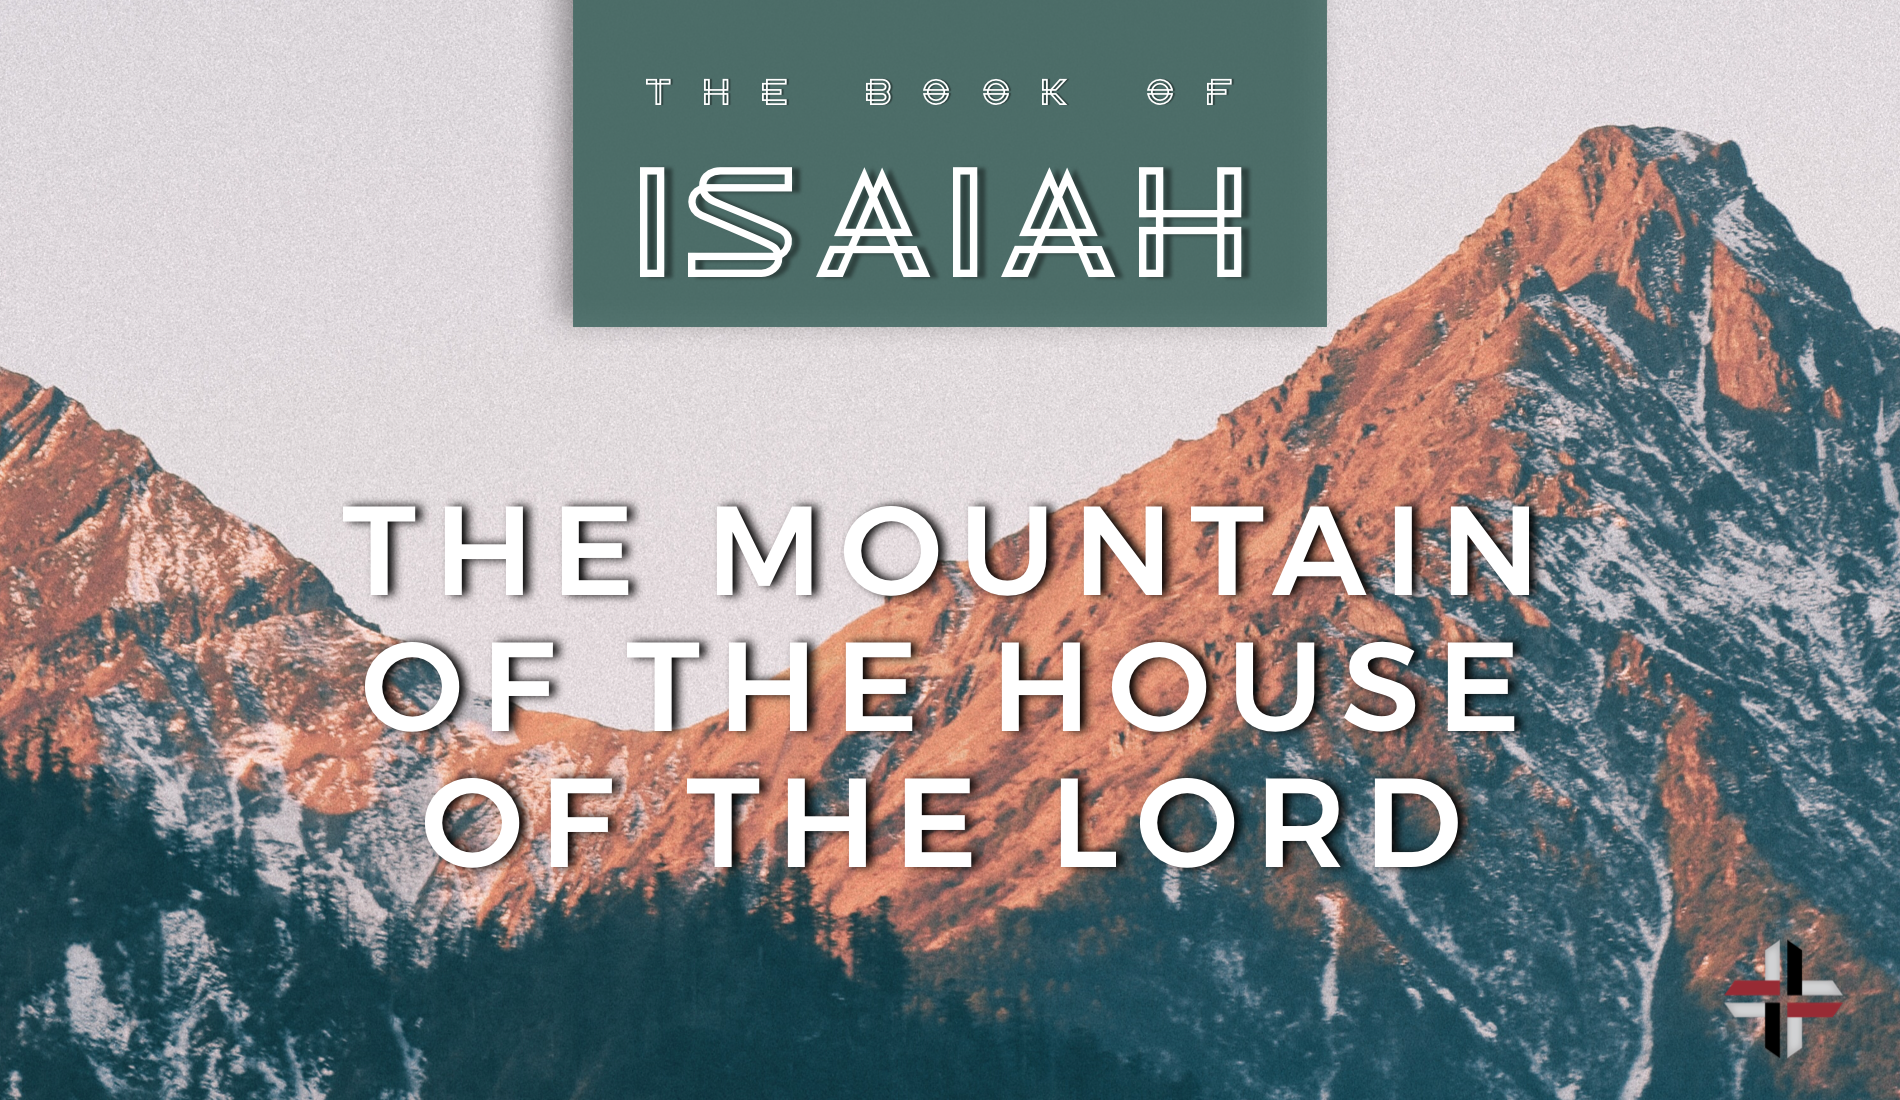 The Mountain Of The House Of The Lord